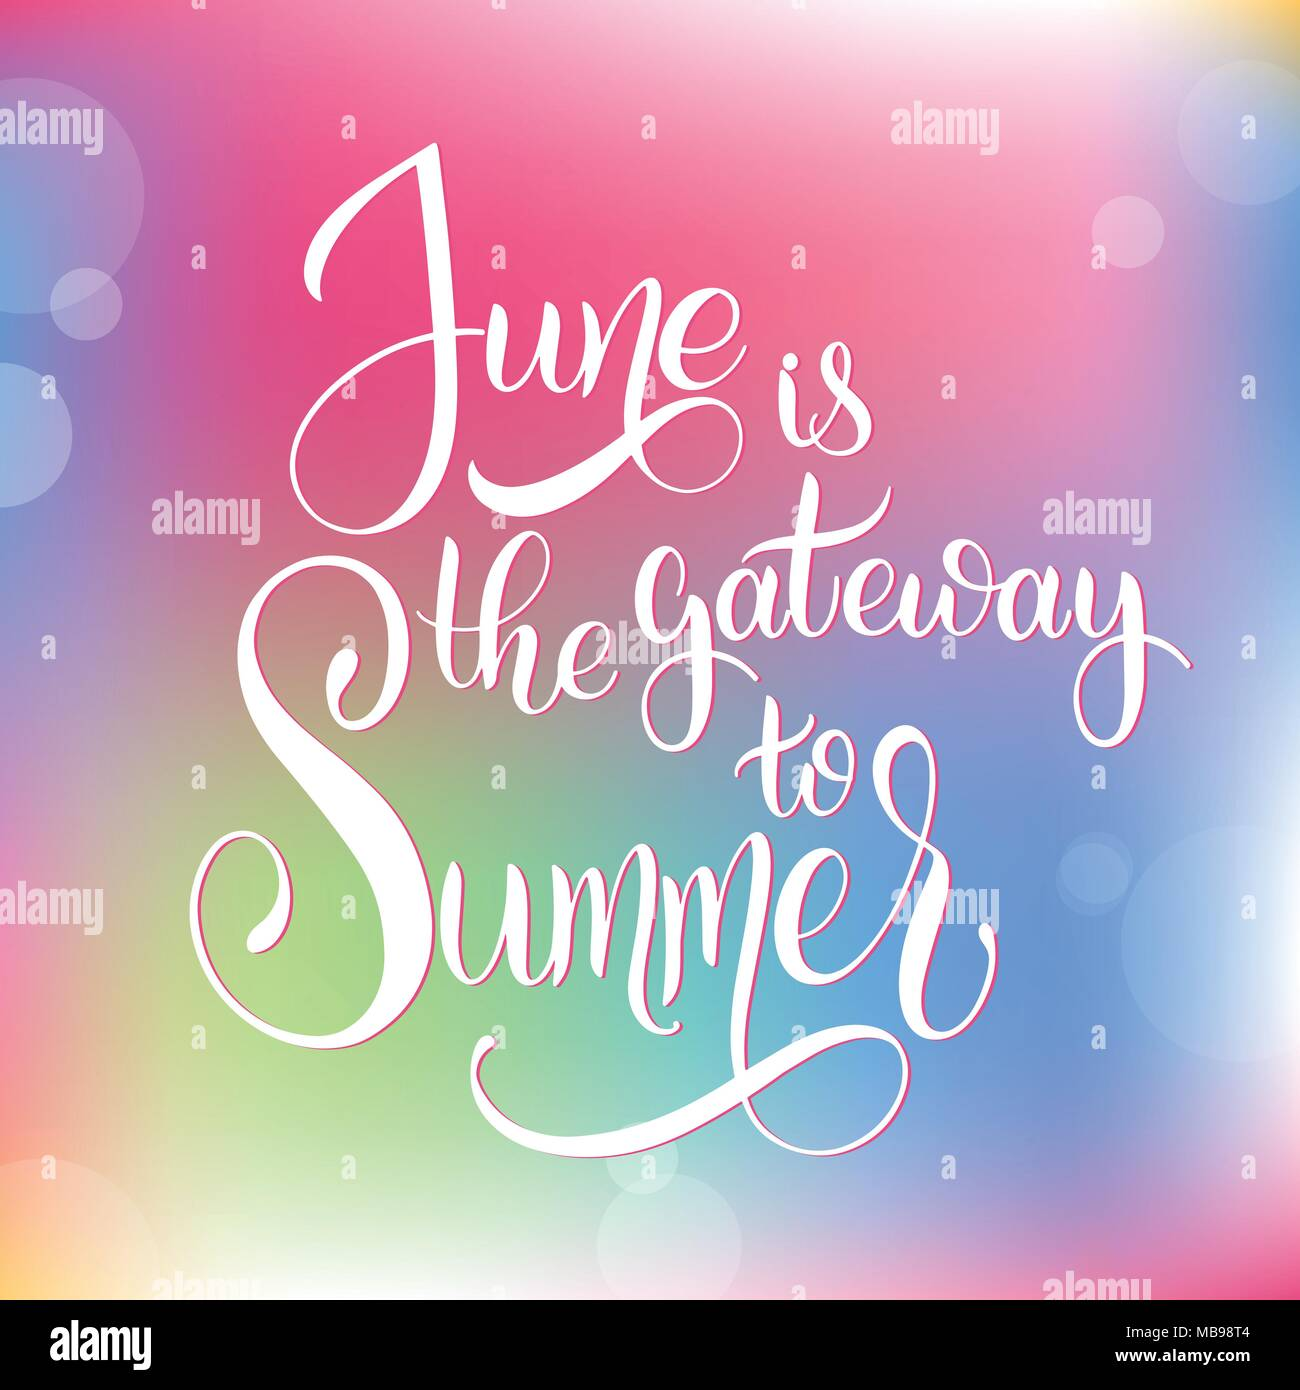 June Is The Gateway To Summer Hello June Lettering Elements For Invitations Posters Greeting Cards Seasons Greetings Stock Vector Image Art Alamy